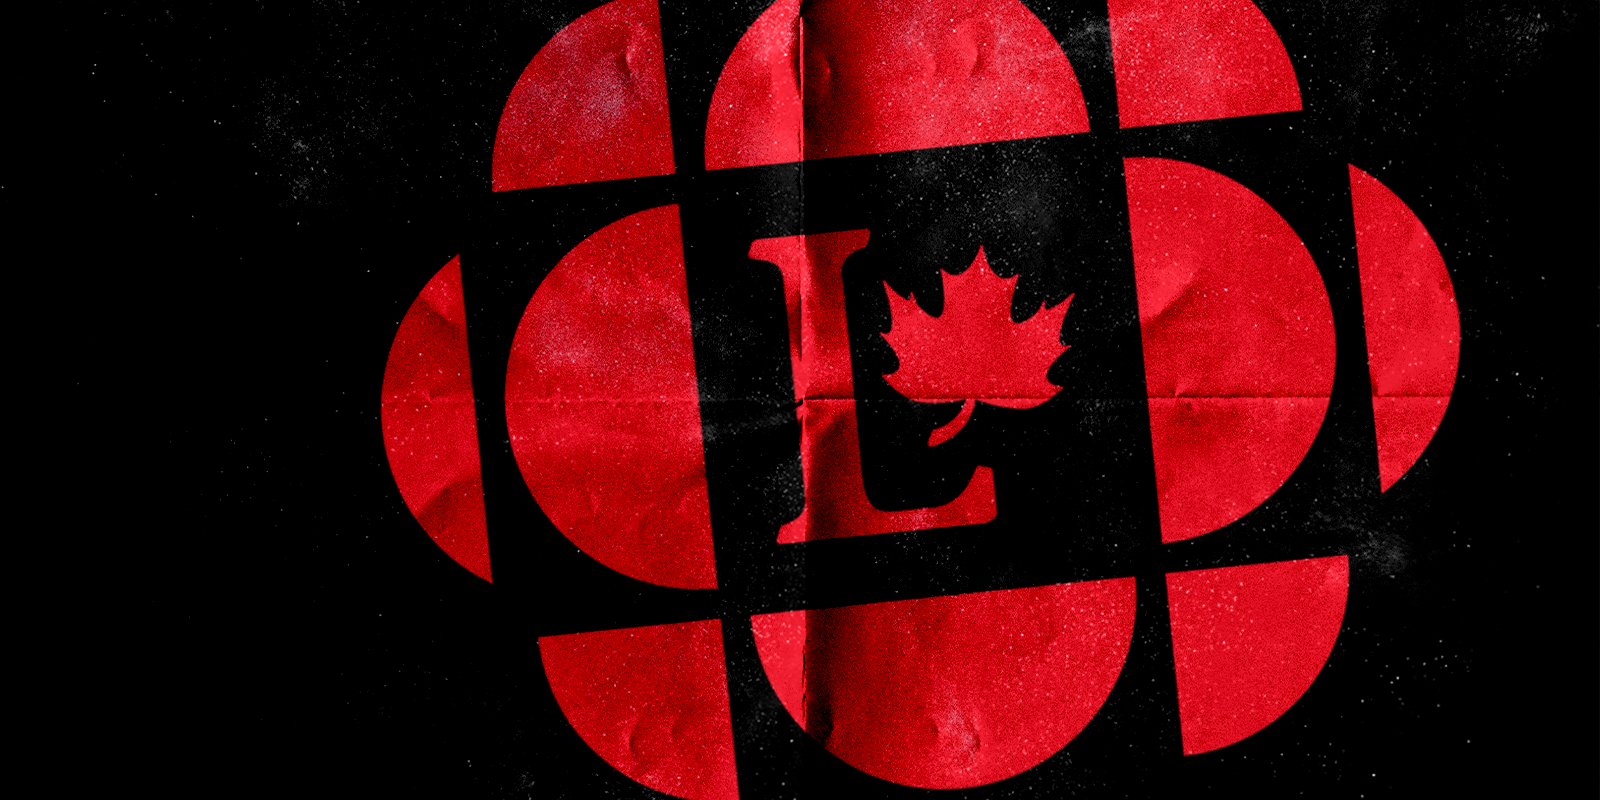 CBC branded itself Liberal this election